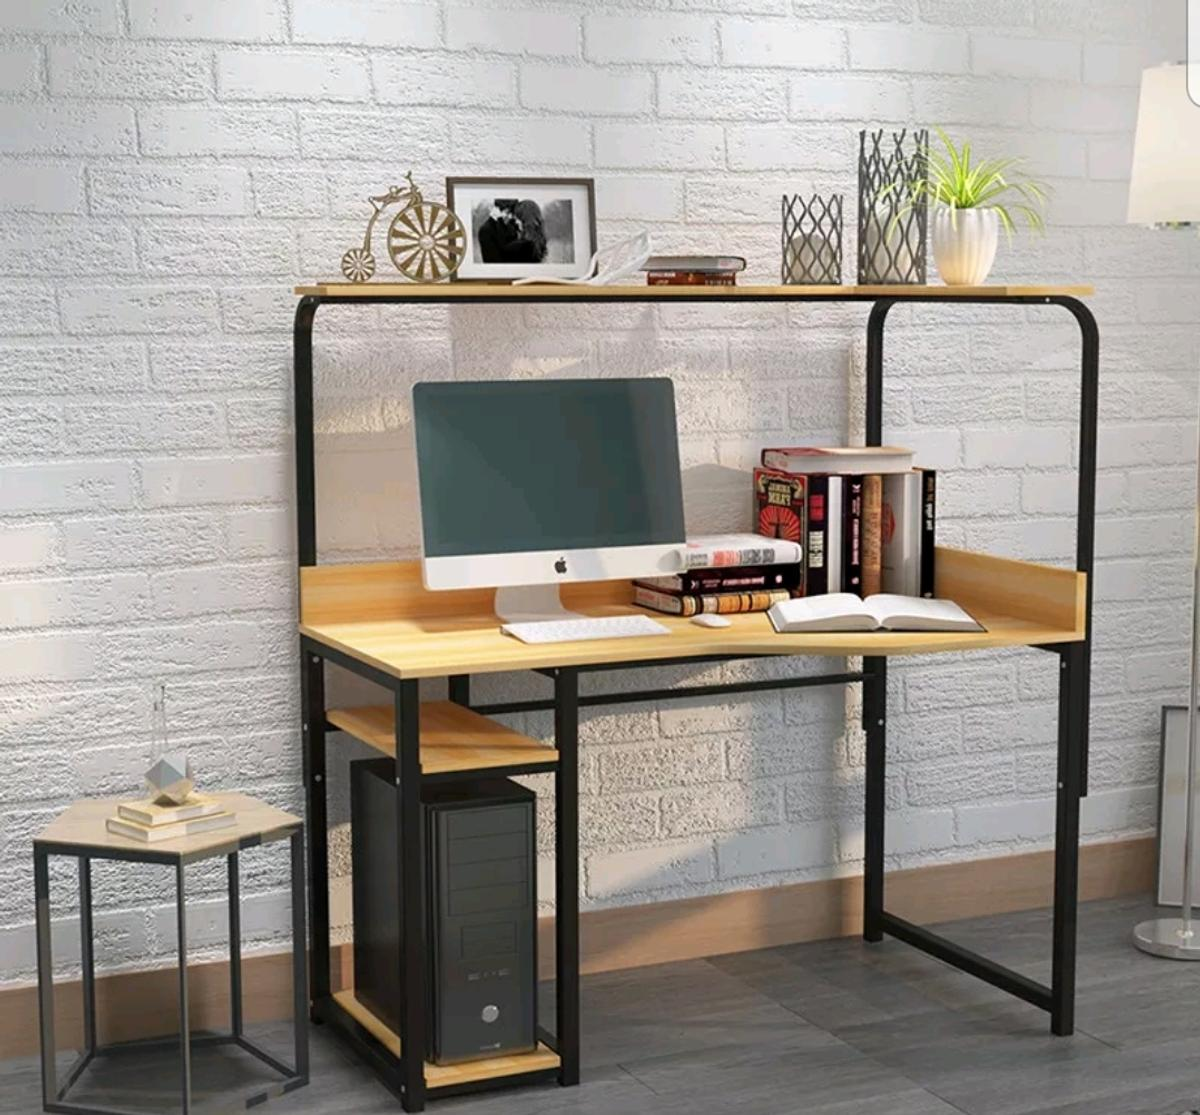 Swell Office Computer Study Desk With Bookshelves In Dy2 Dudley Interior Design Ideas Inesswwsoteloinfo